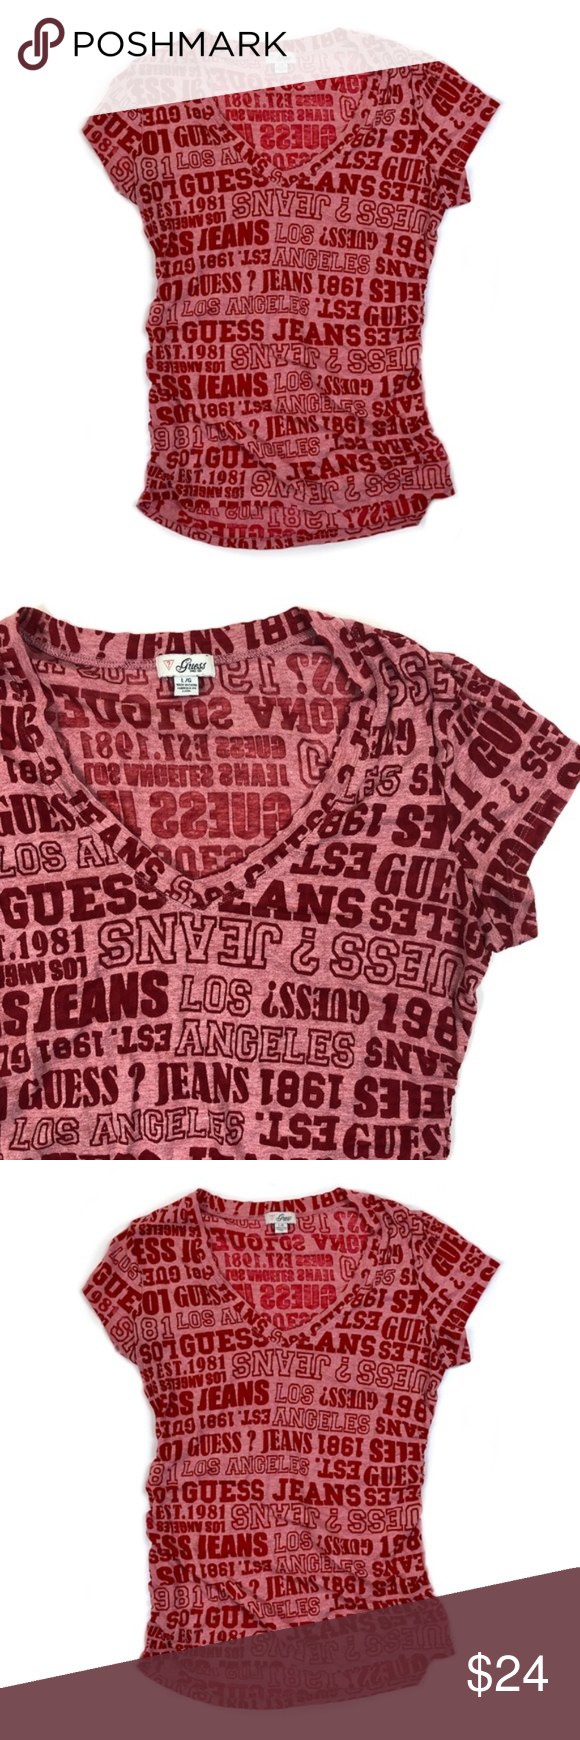 Guess Est 1981 Print For Clothing